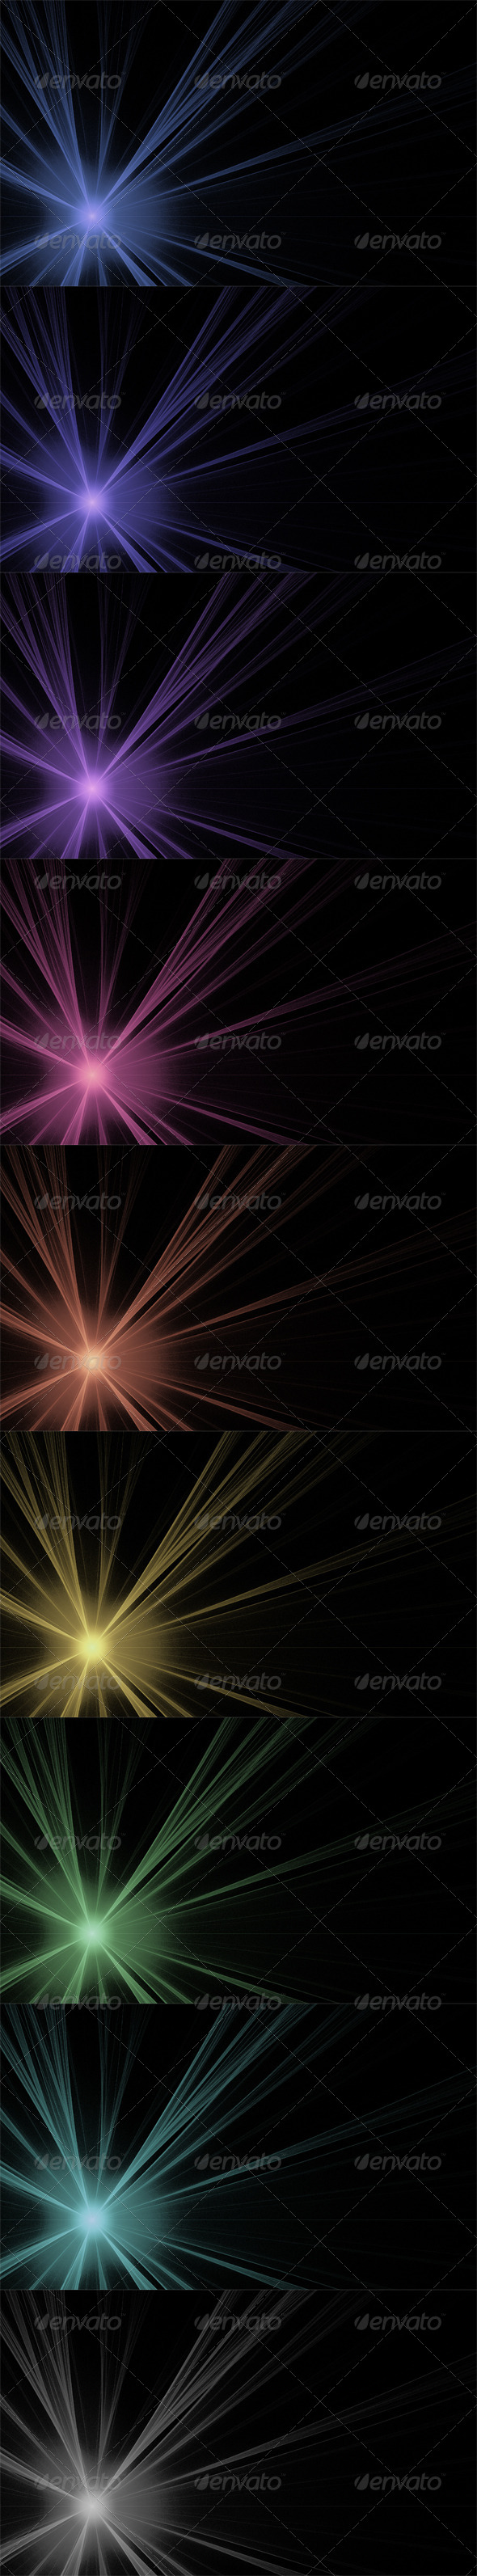 Abstract Cosmic Background (3413x2048px) - Abstract Backgrounds